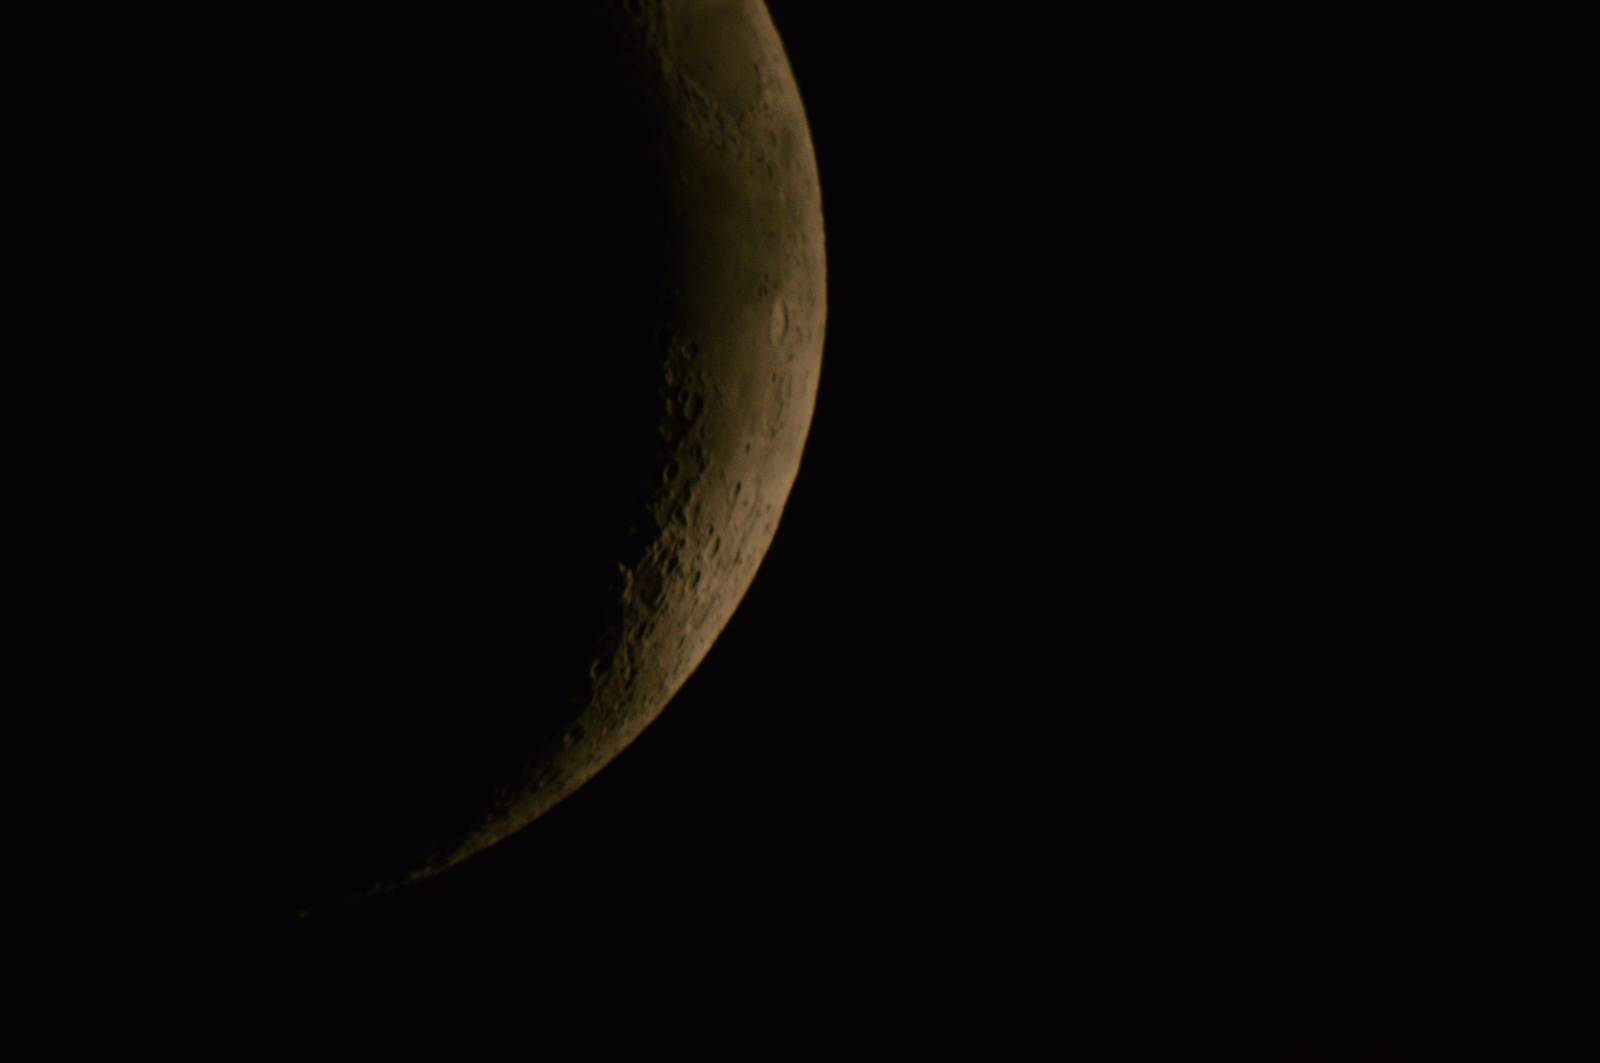 26 Apr, 2020 - waxing crescent about 3 days old